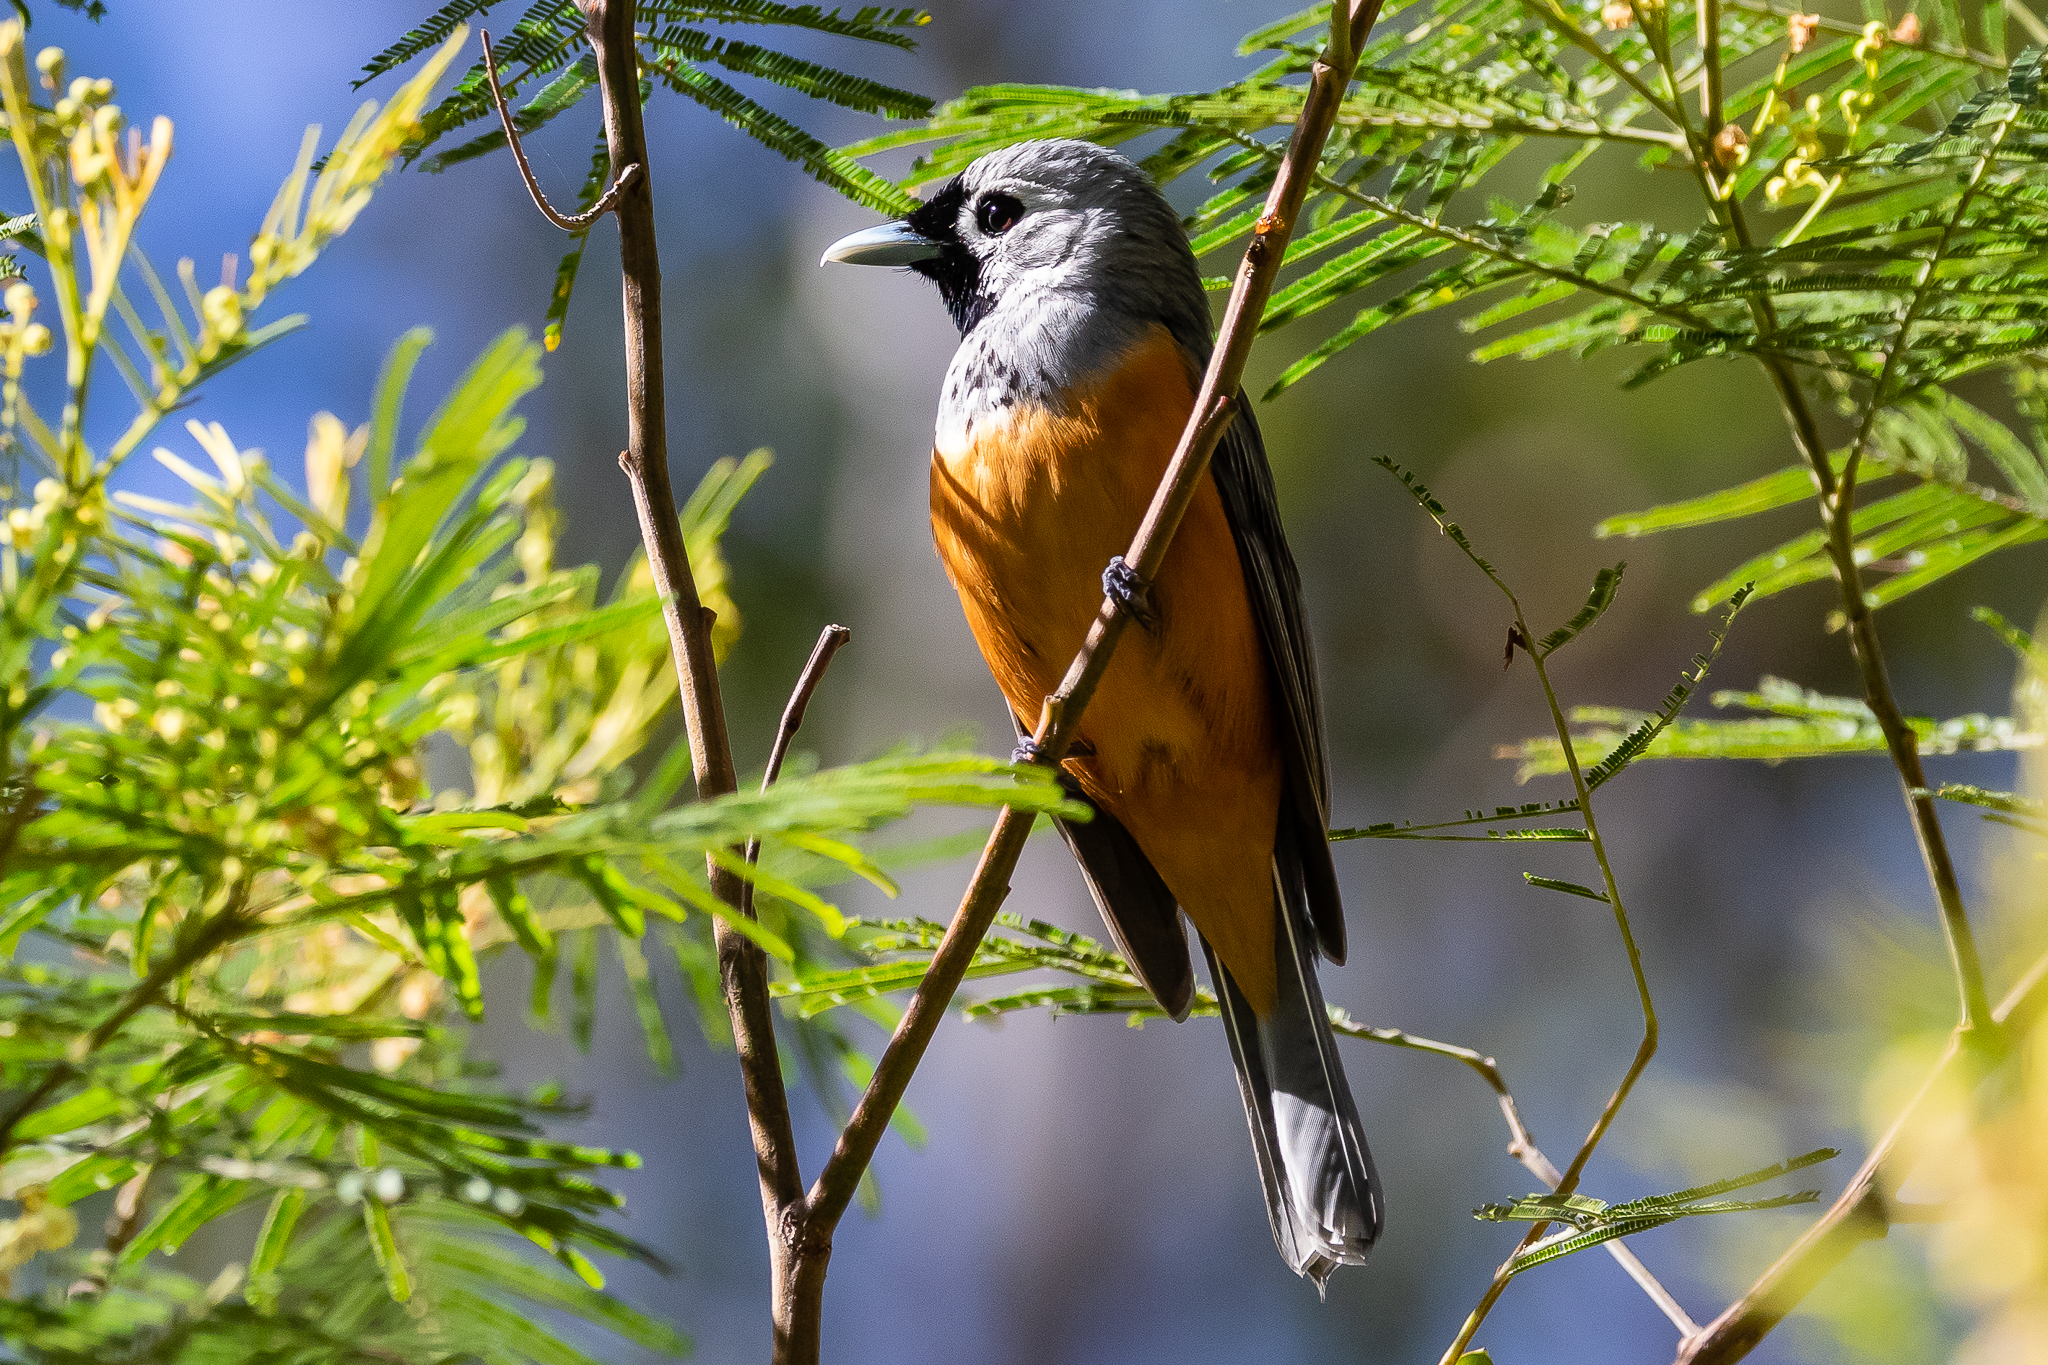 The Black-faced Monarch is found in South Coast forests and woodlands, feeding on insects it finds in the foliage or taking insects on the wing. It spends the winter in New Guinea and summers along the east coast of Australia.